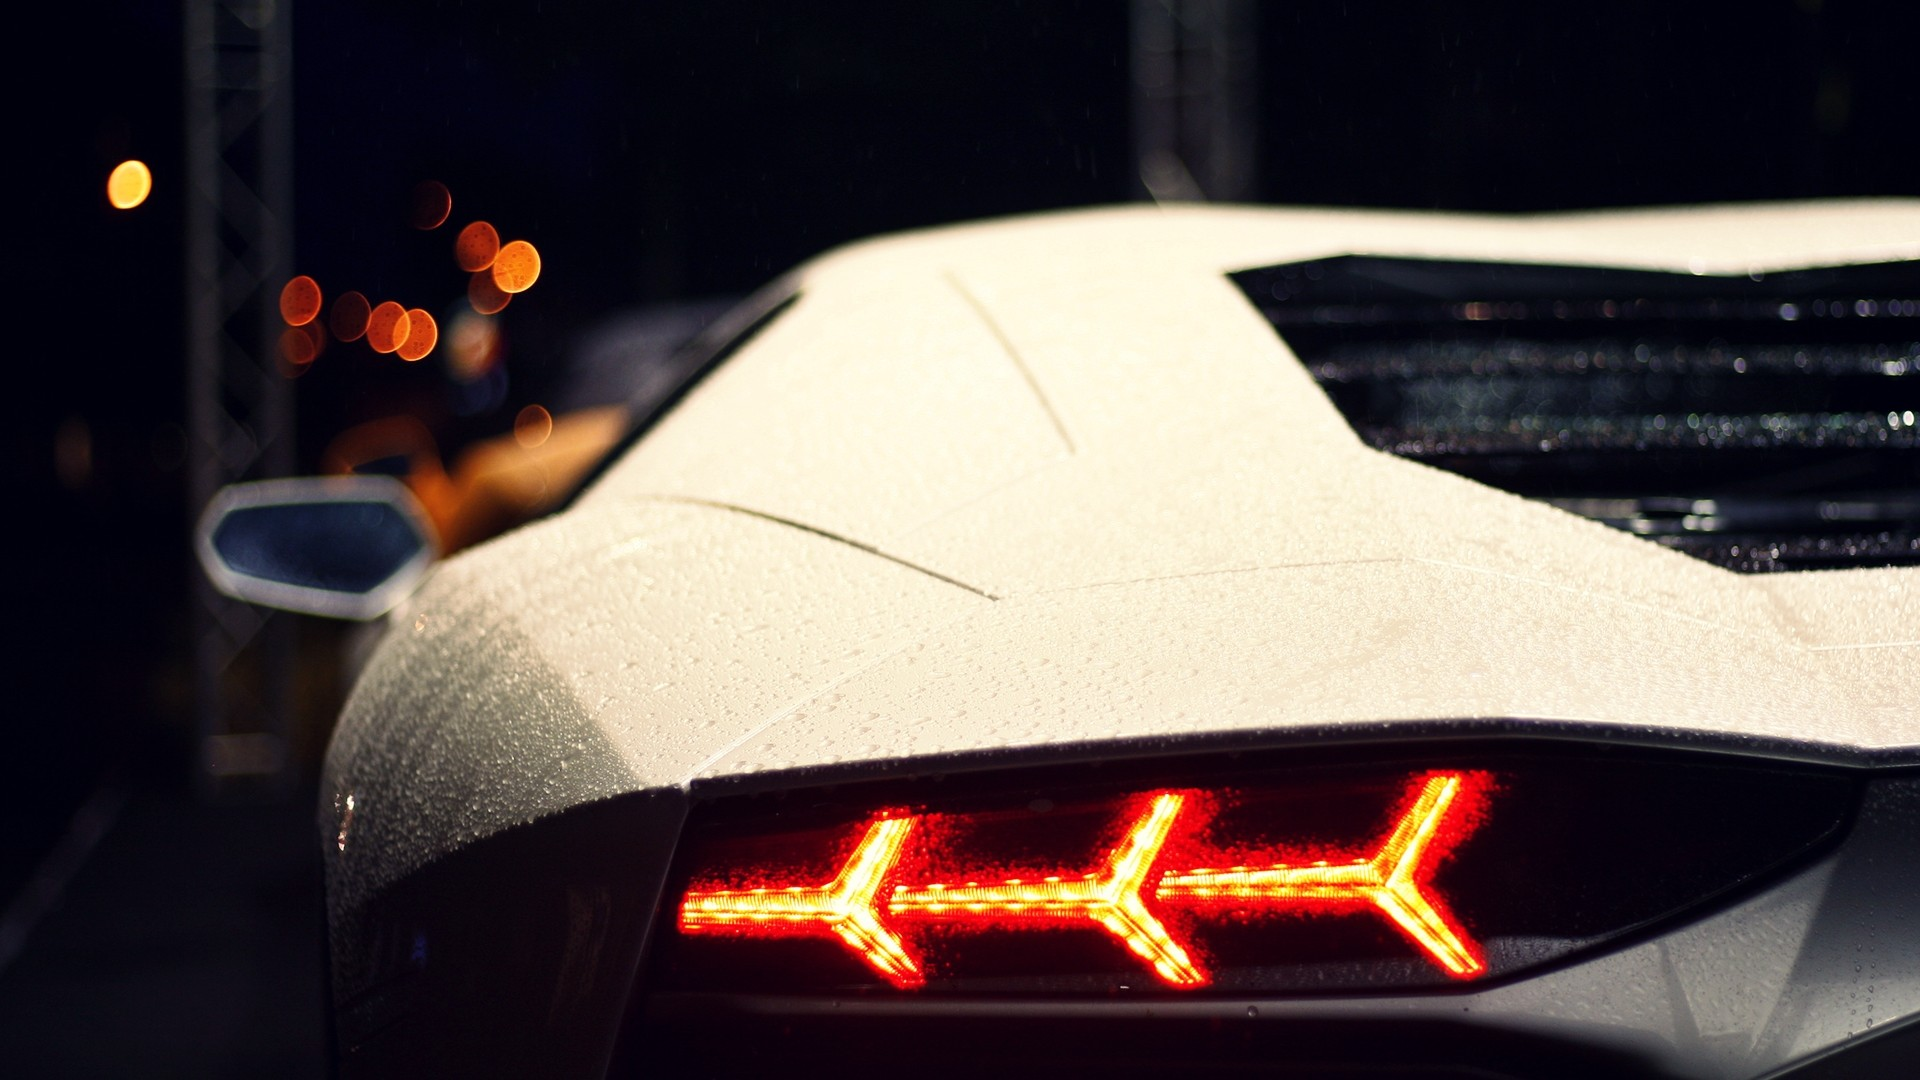 Lamborghini Aventador Wallpapers HD A14 White - lamborghini aventador desktop sports cars, race cars, luxury cars, expensive cars, wallpapers pictures images free download